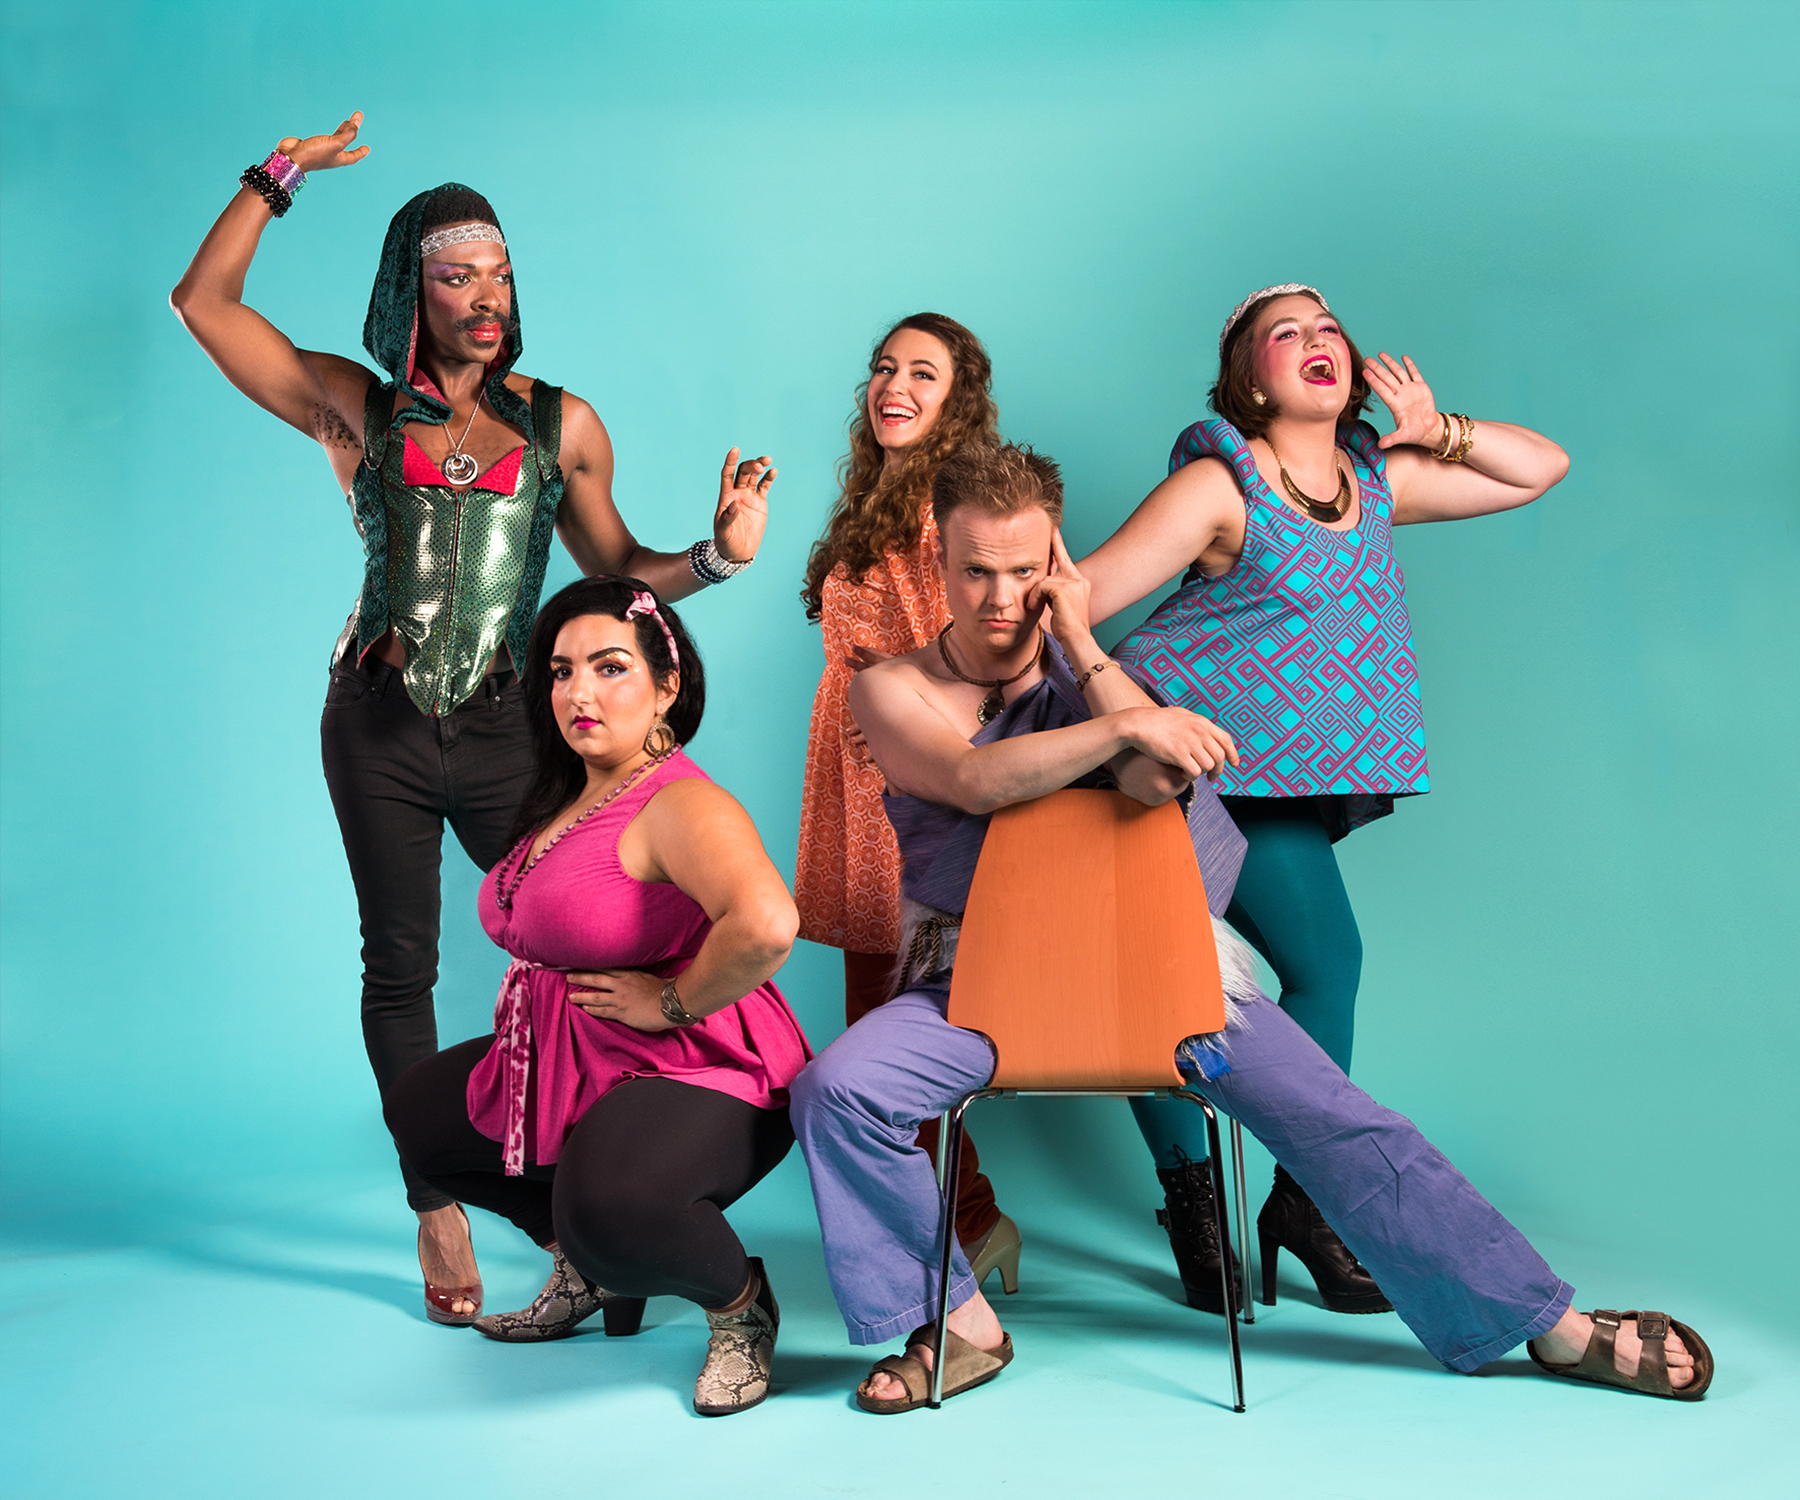 Pictured L to R: Rotimi Agbabiaka*, Danya El-Kurd, Kimberley Cohan, Scott Scholes, and Ella Ruth Francis. Photo by Lois Tema. *Appears through the courtesy of Actors' Equity Association, the Union of Professional Actors and Stage Managers in the United States.